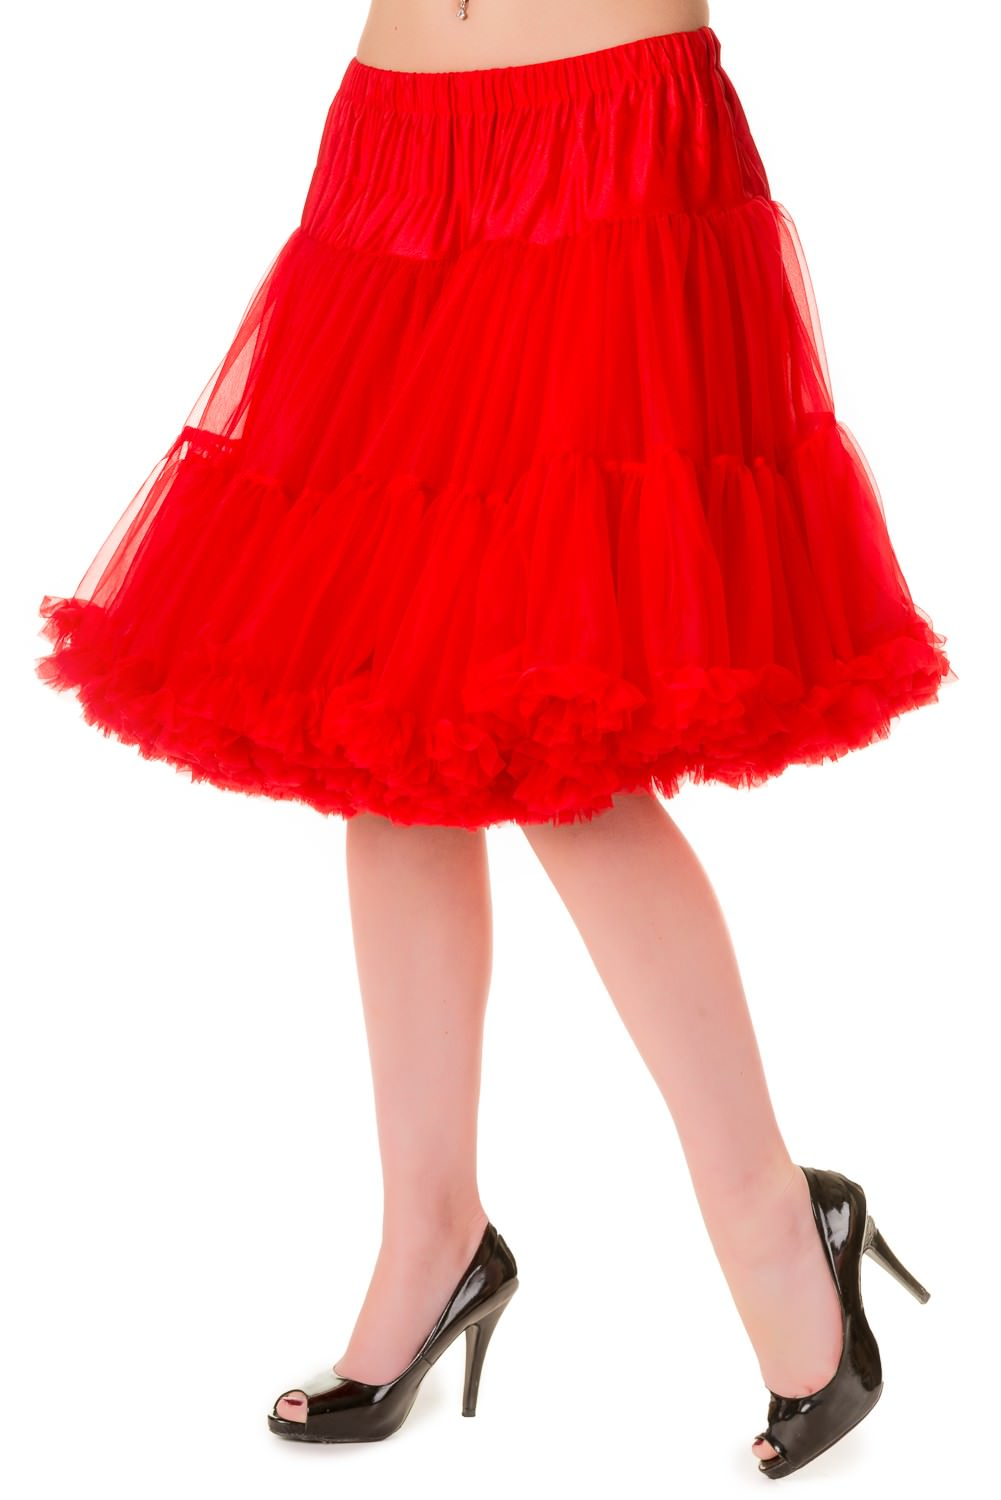 Walkabout Petticoat in Red - Natasha Marie Clothing